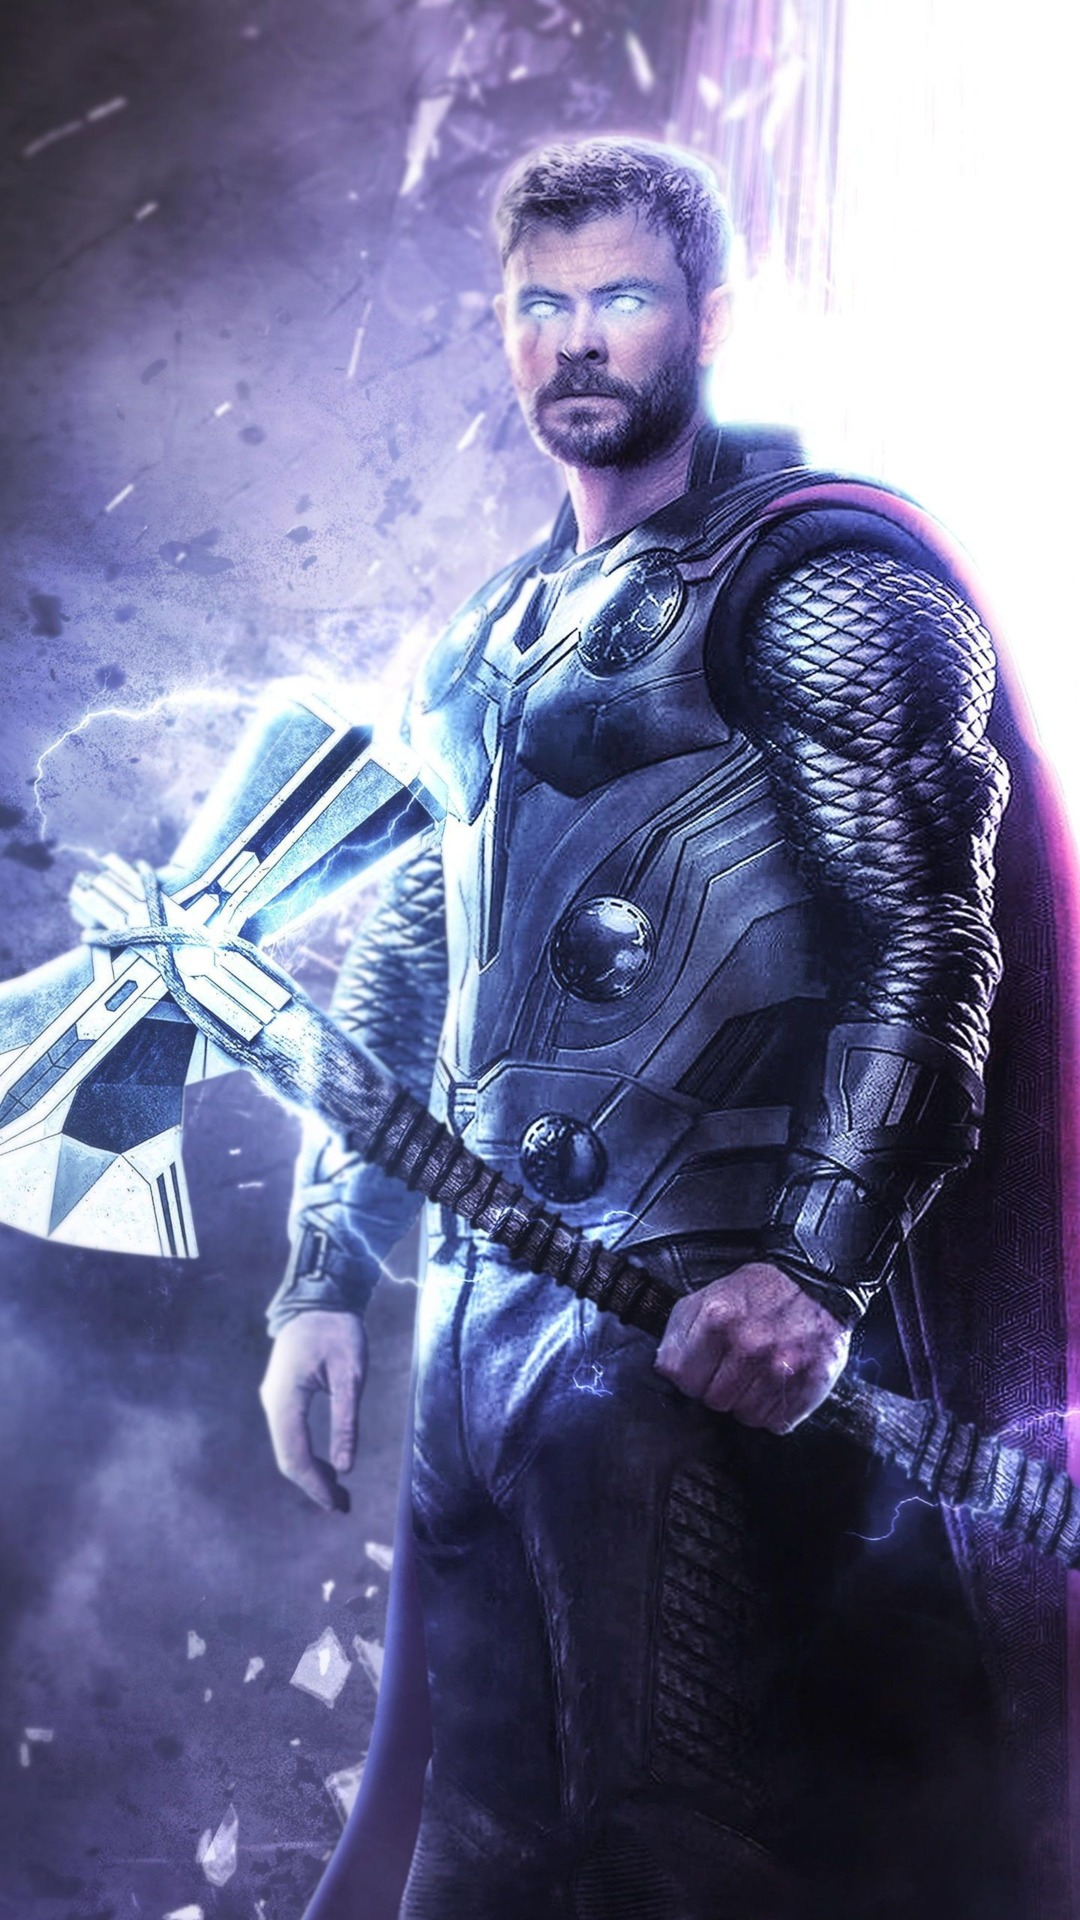 Thor is impressive and all, but Stormbreaker specifically is the MVP